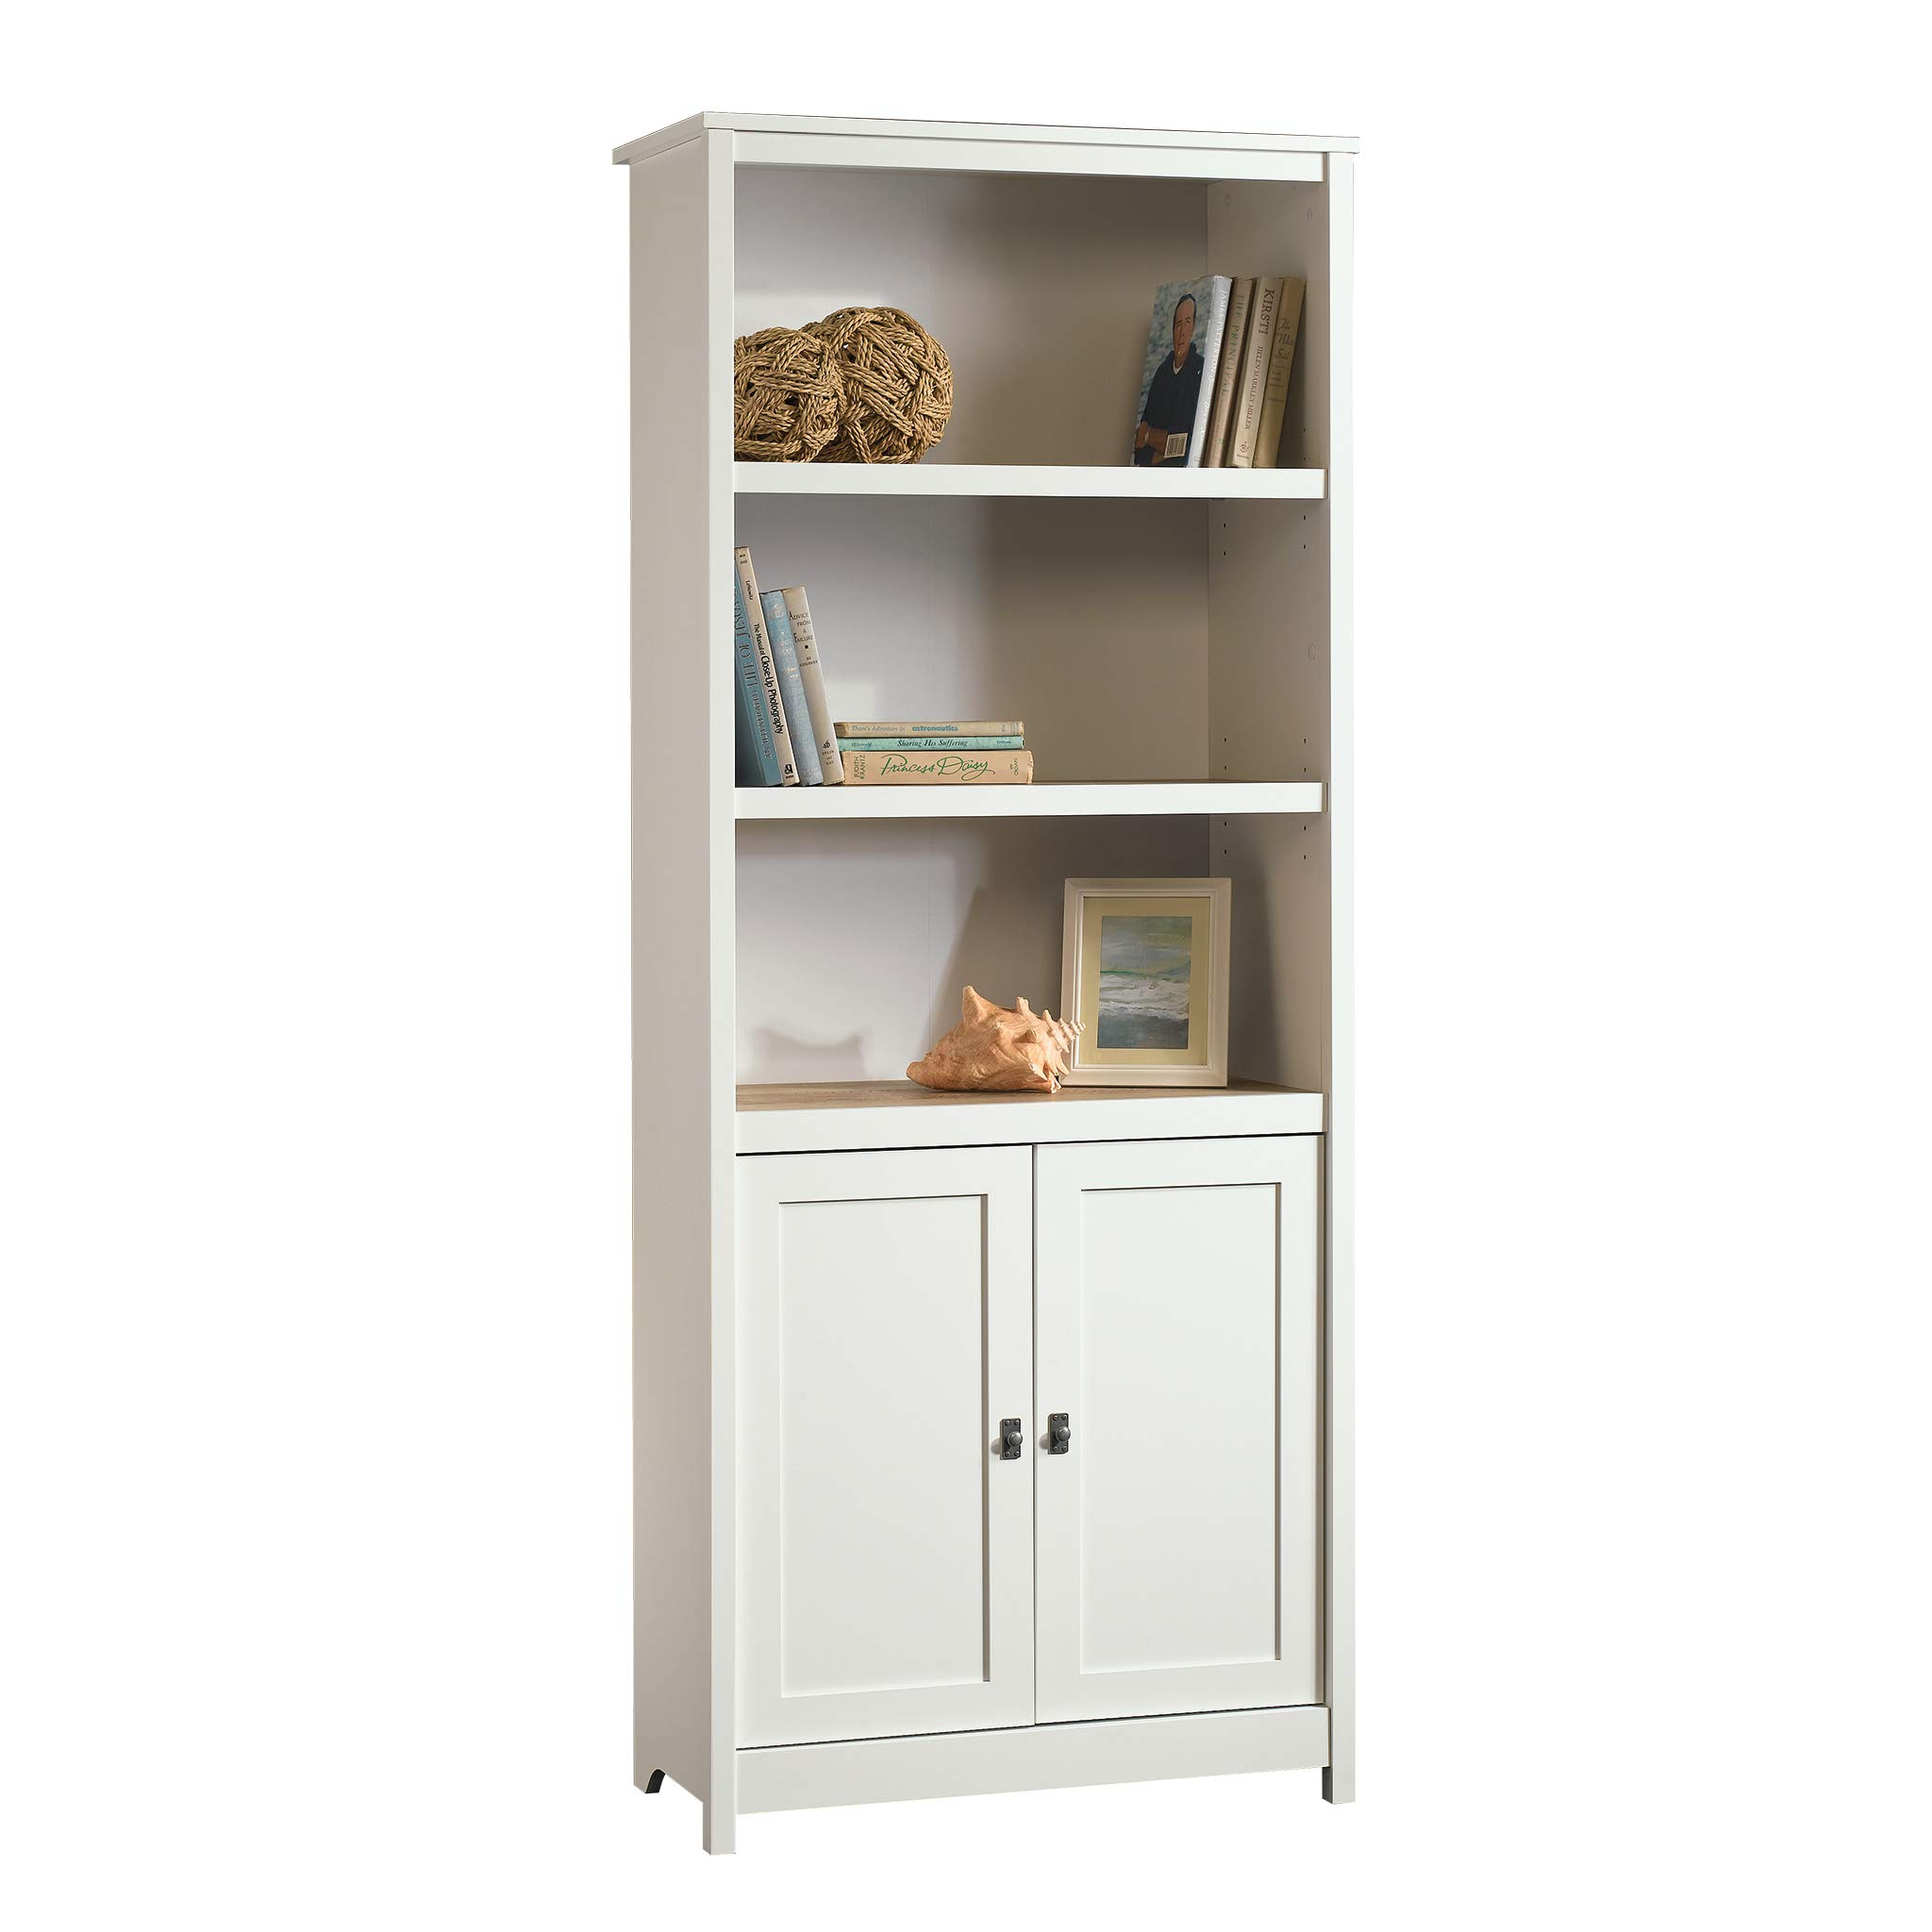 Sauder 417593 Cottage Road Library with Doors, L: 29.29'' x W: 13.98'' x H: 71.50'', Soft White finish by Sauder